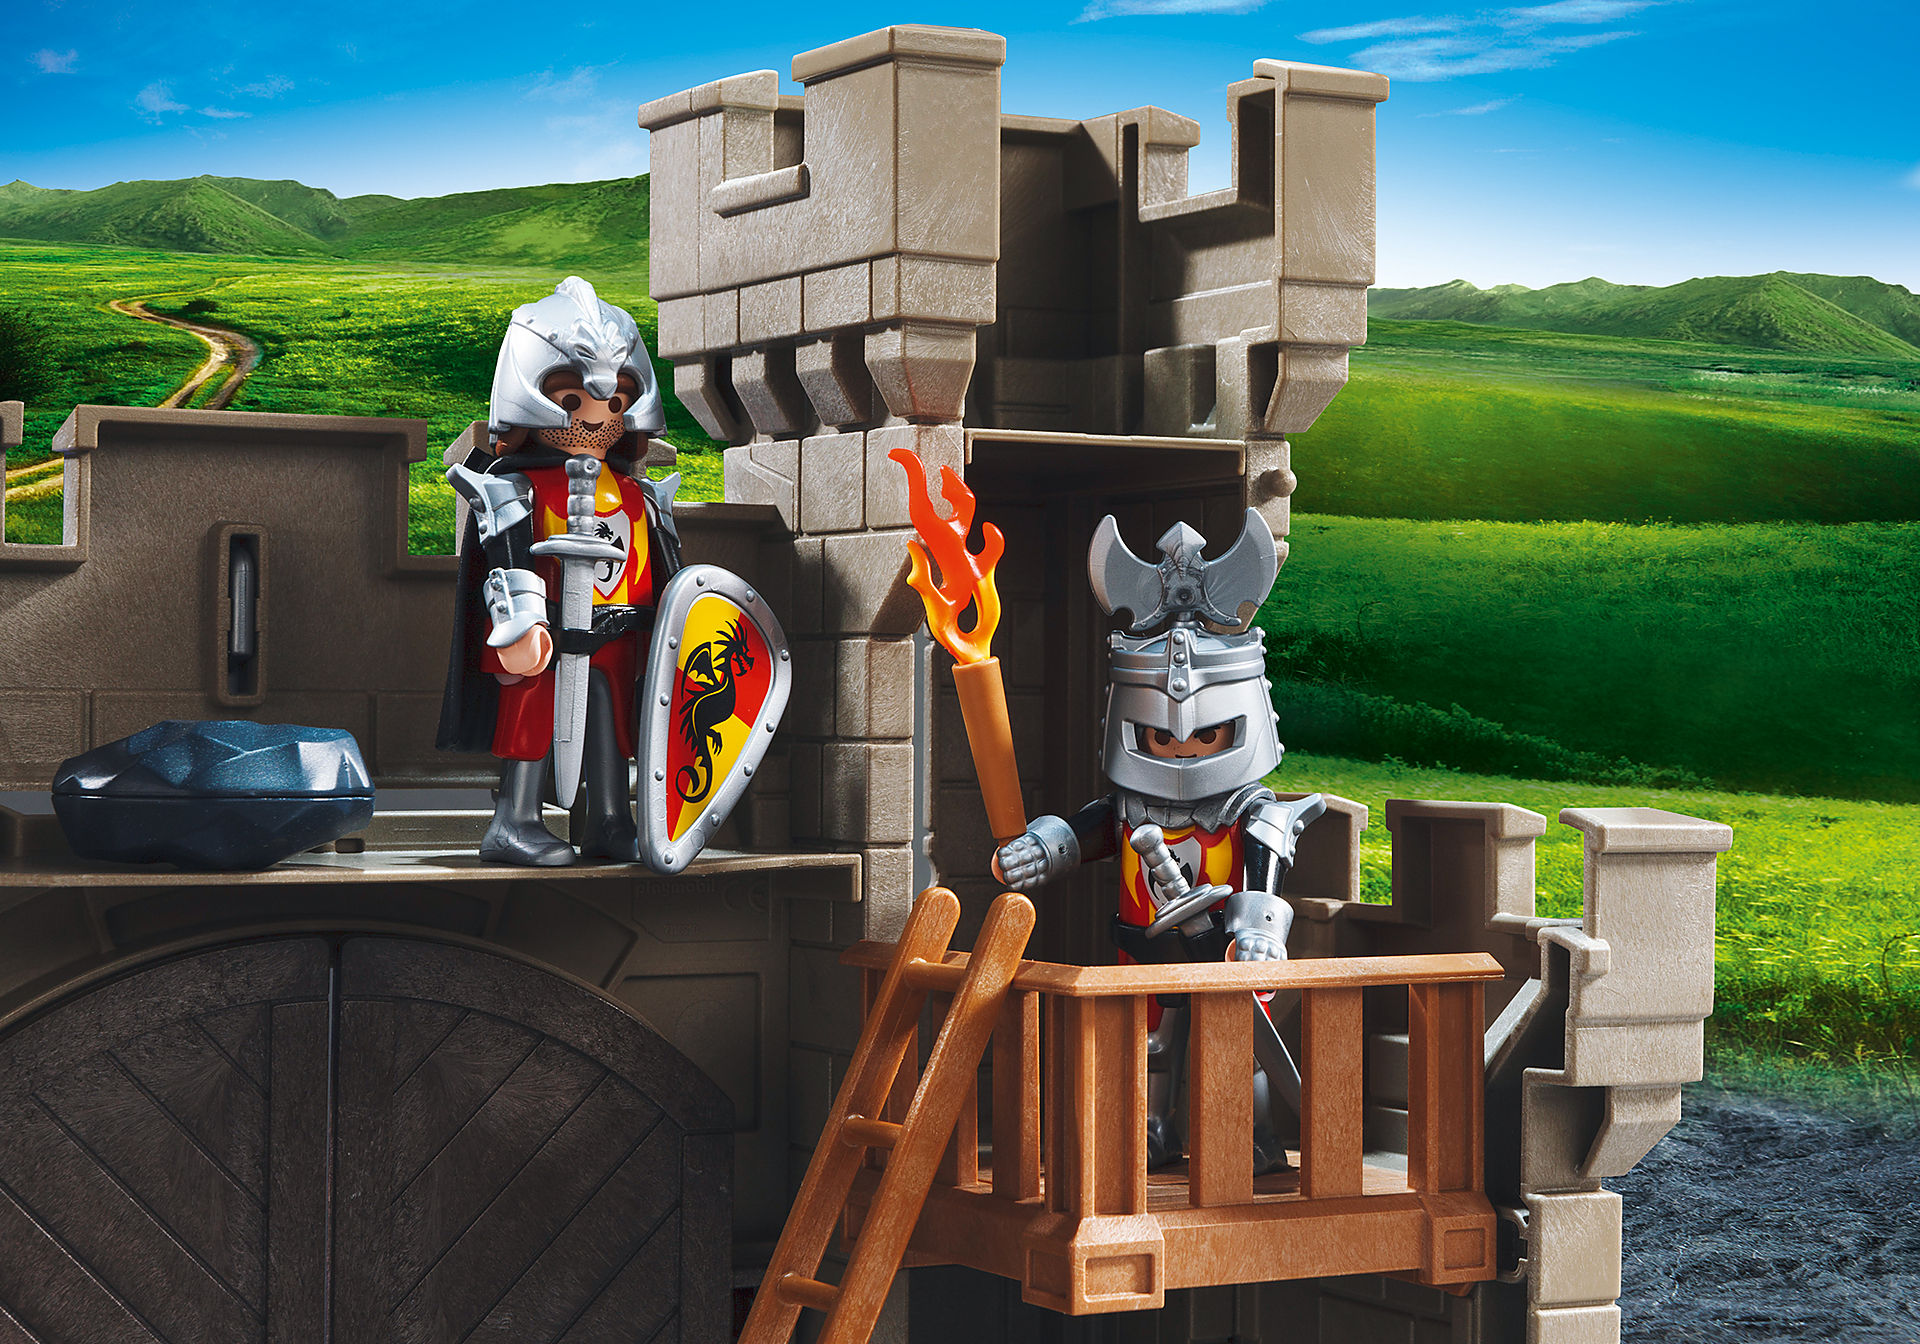 http://media.playmobil.com/i/playmobil/5670_product_extra4/Citadelle des chevaliers avec troll